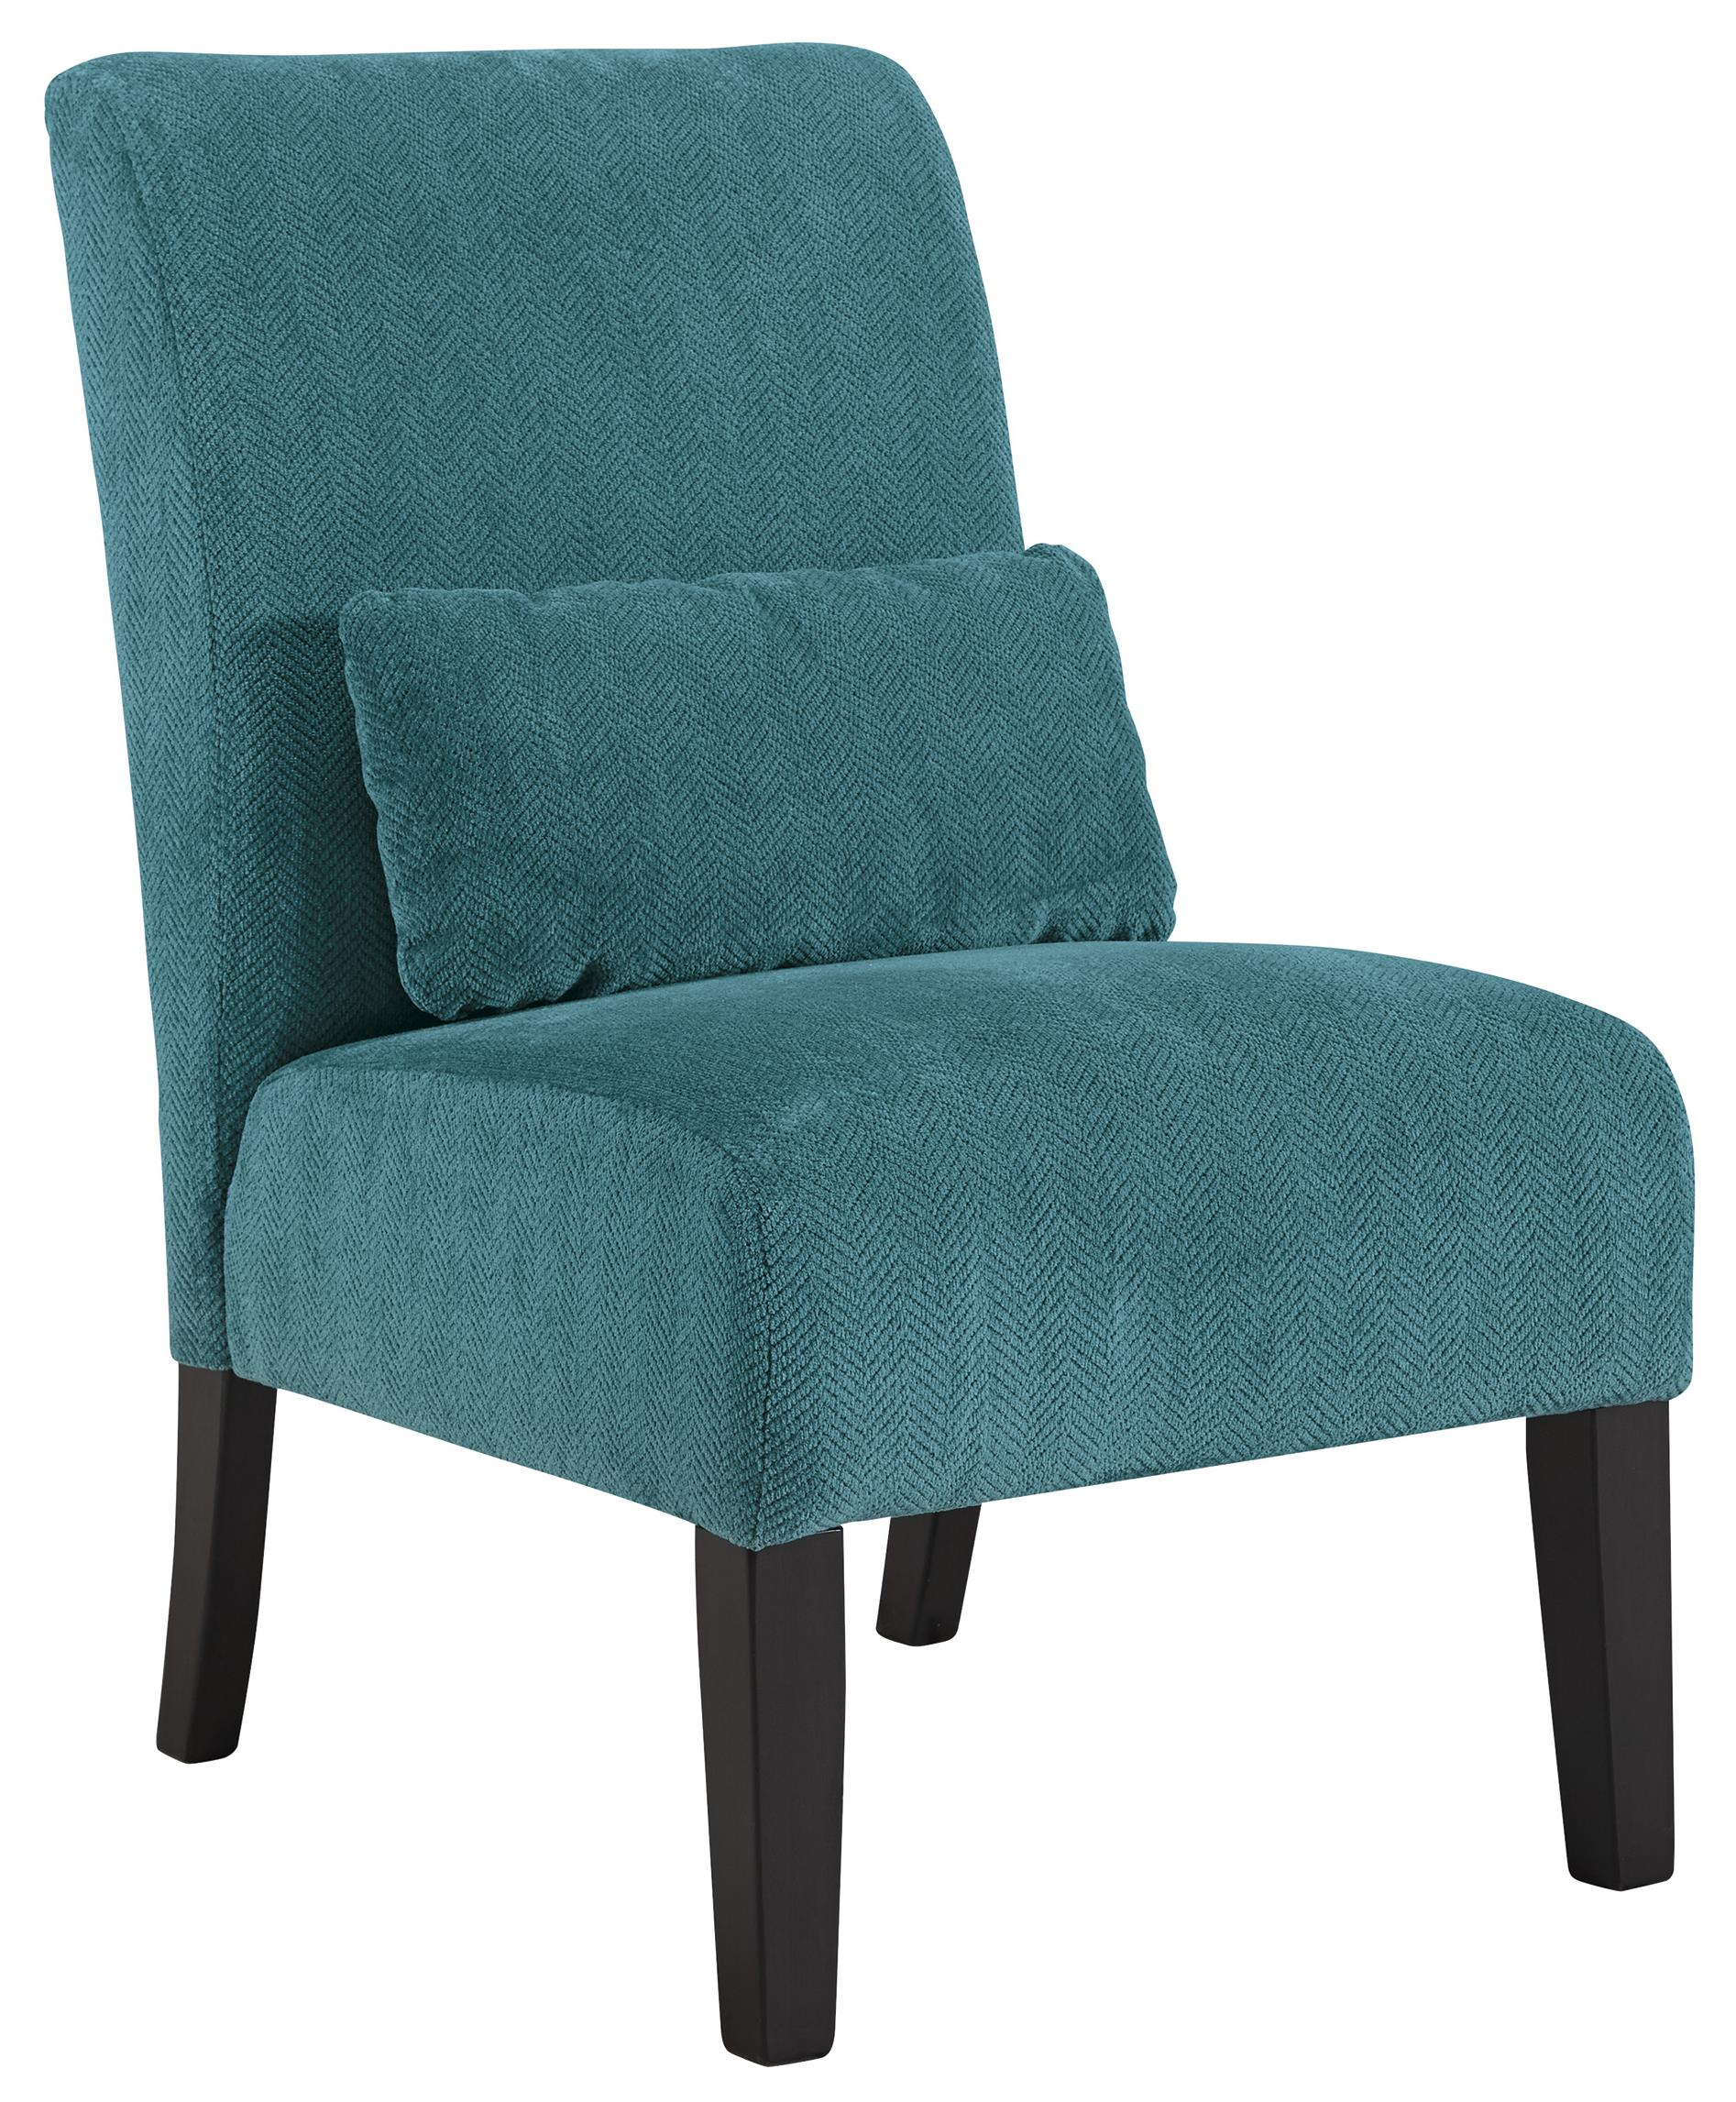 Awesome Armless Accent Chair Decor